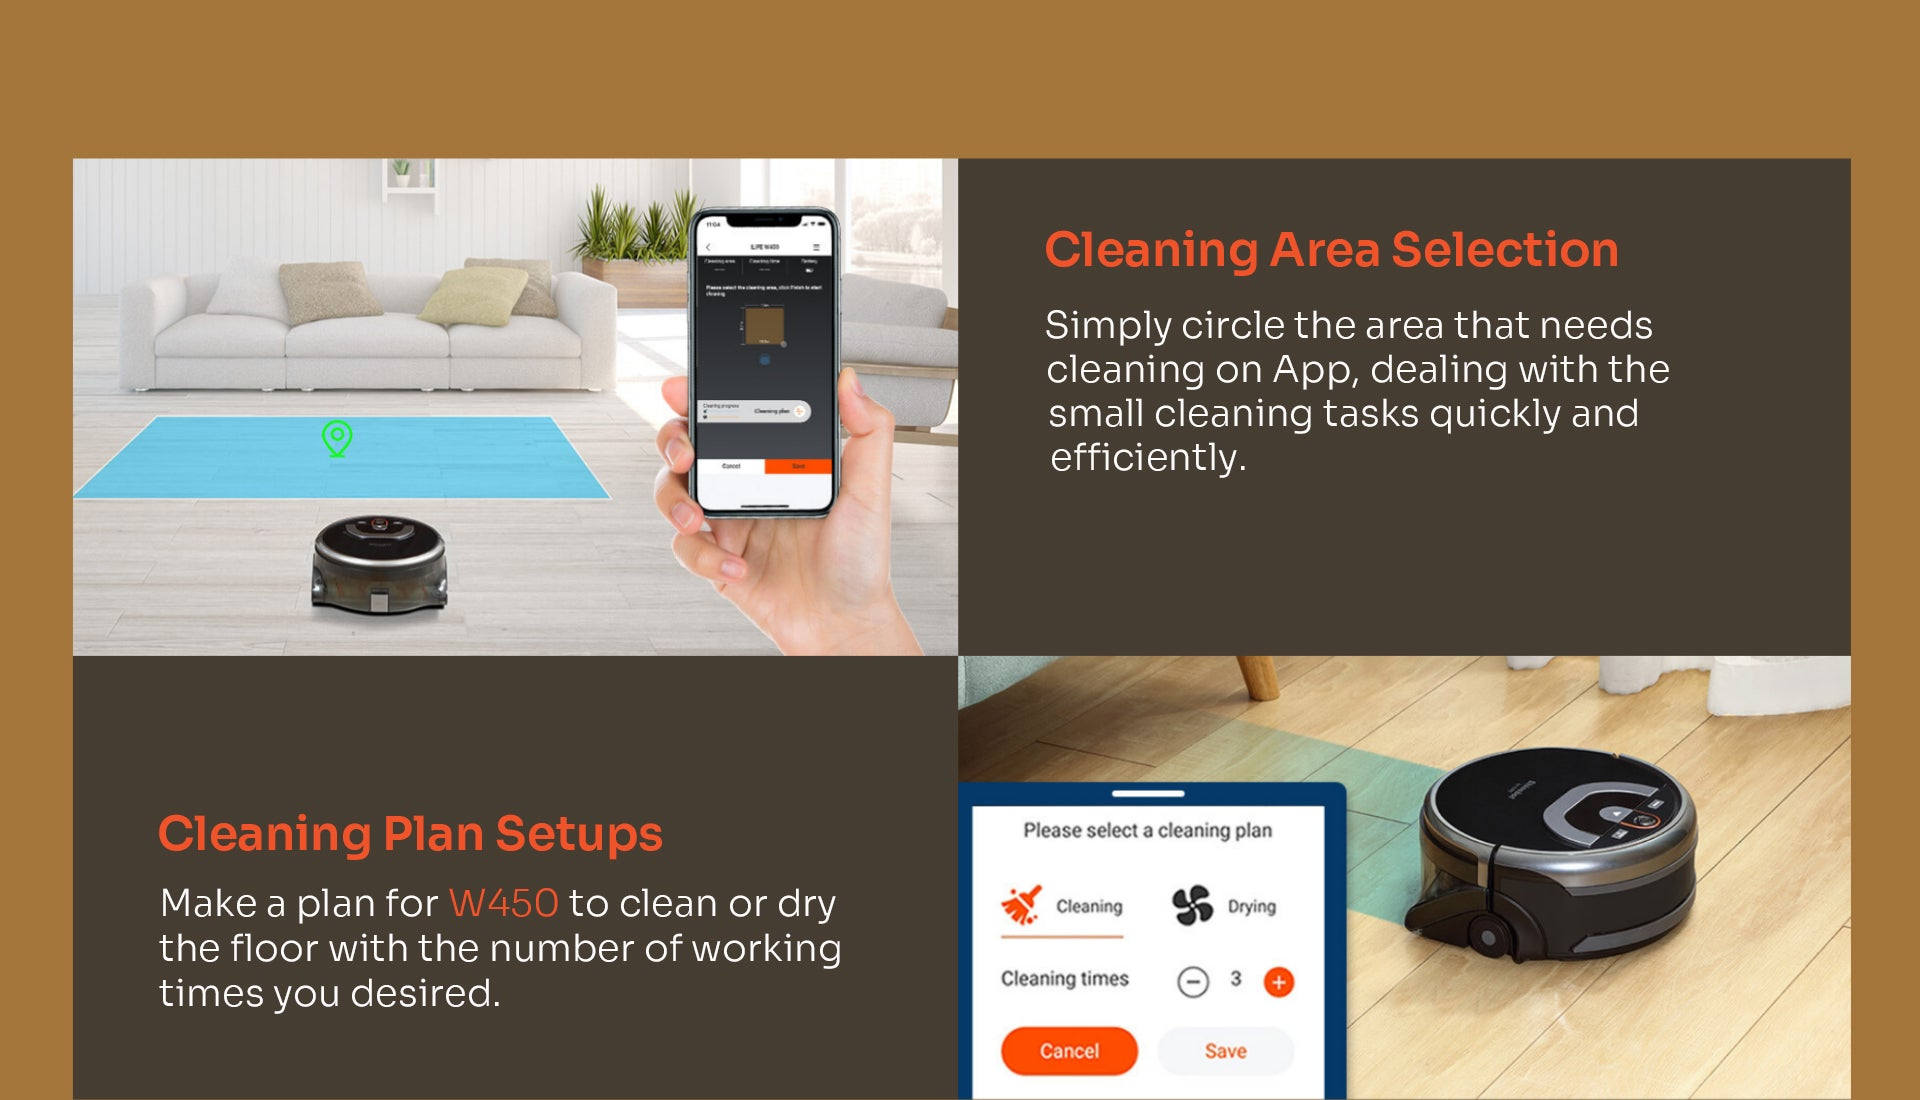 Cleaning Area selection